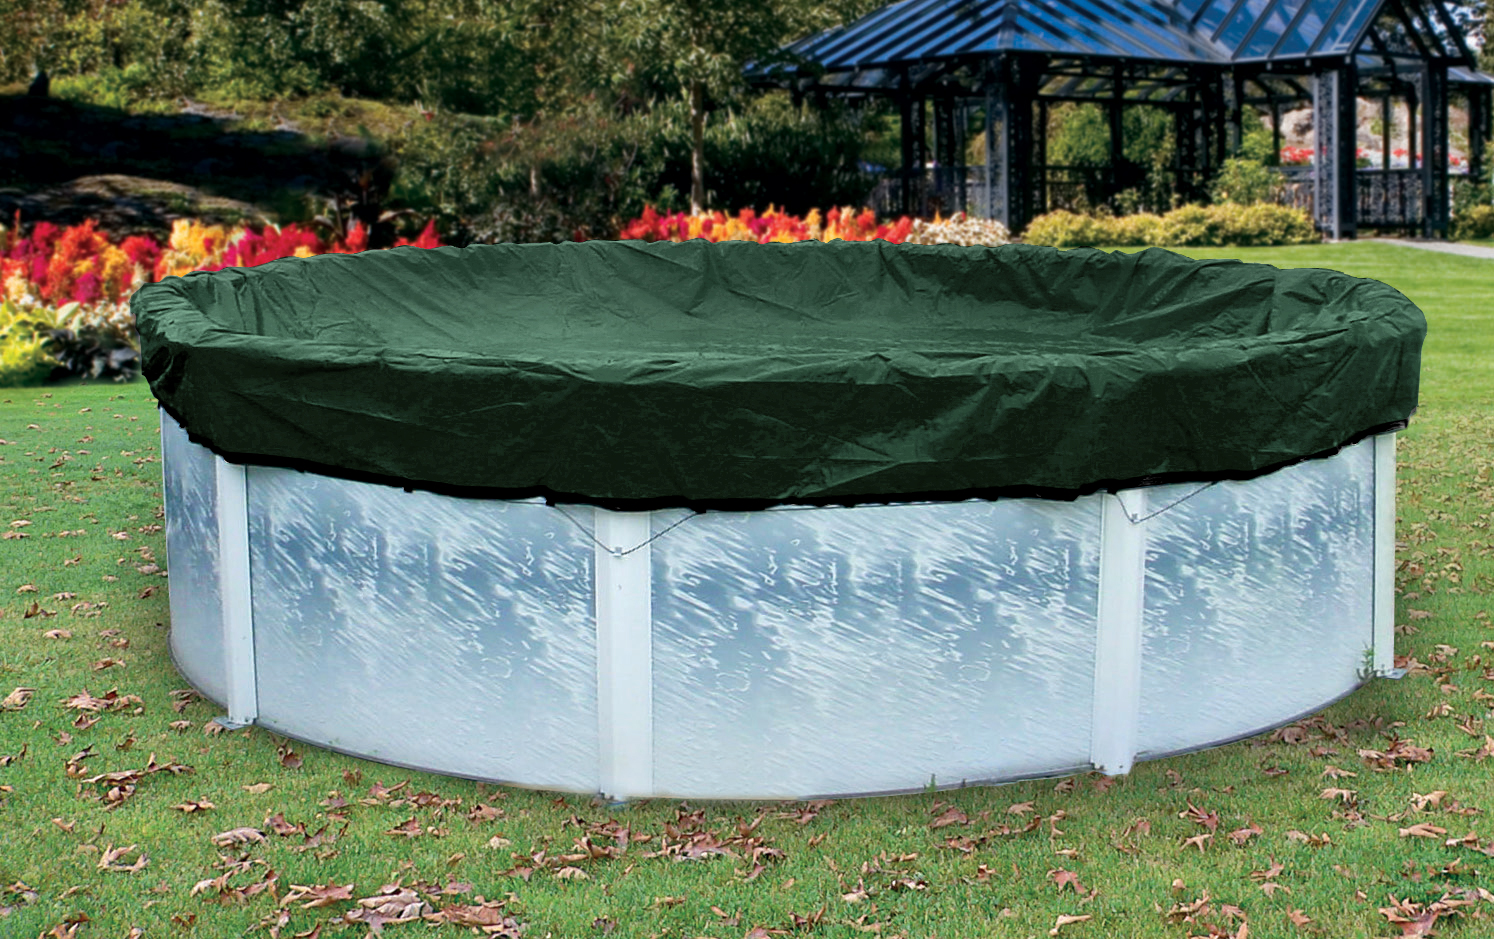 Above Ground Pool Winter Cover 15 X 30 Oval Skirted Winter Cover Green Poolsupplies